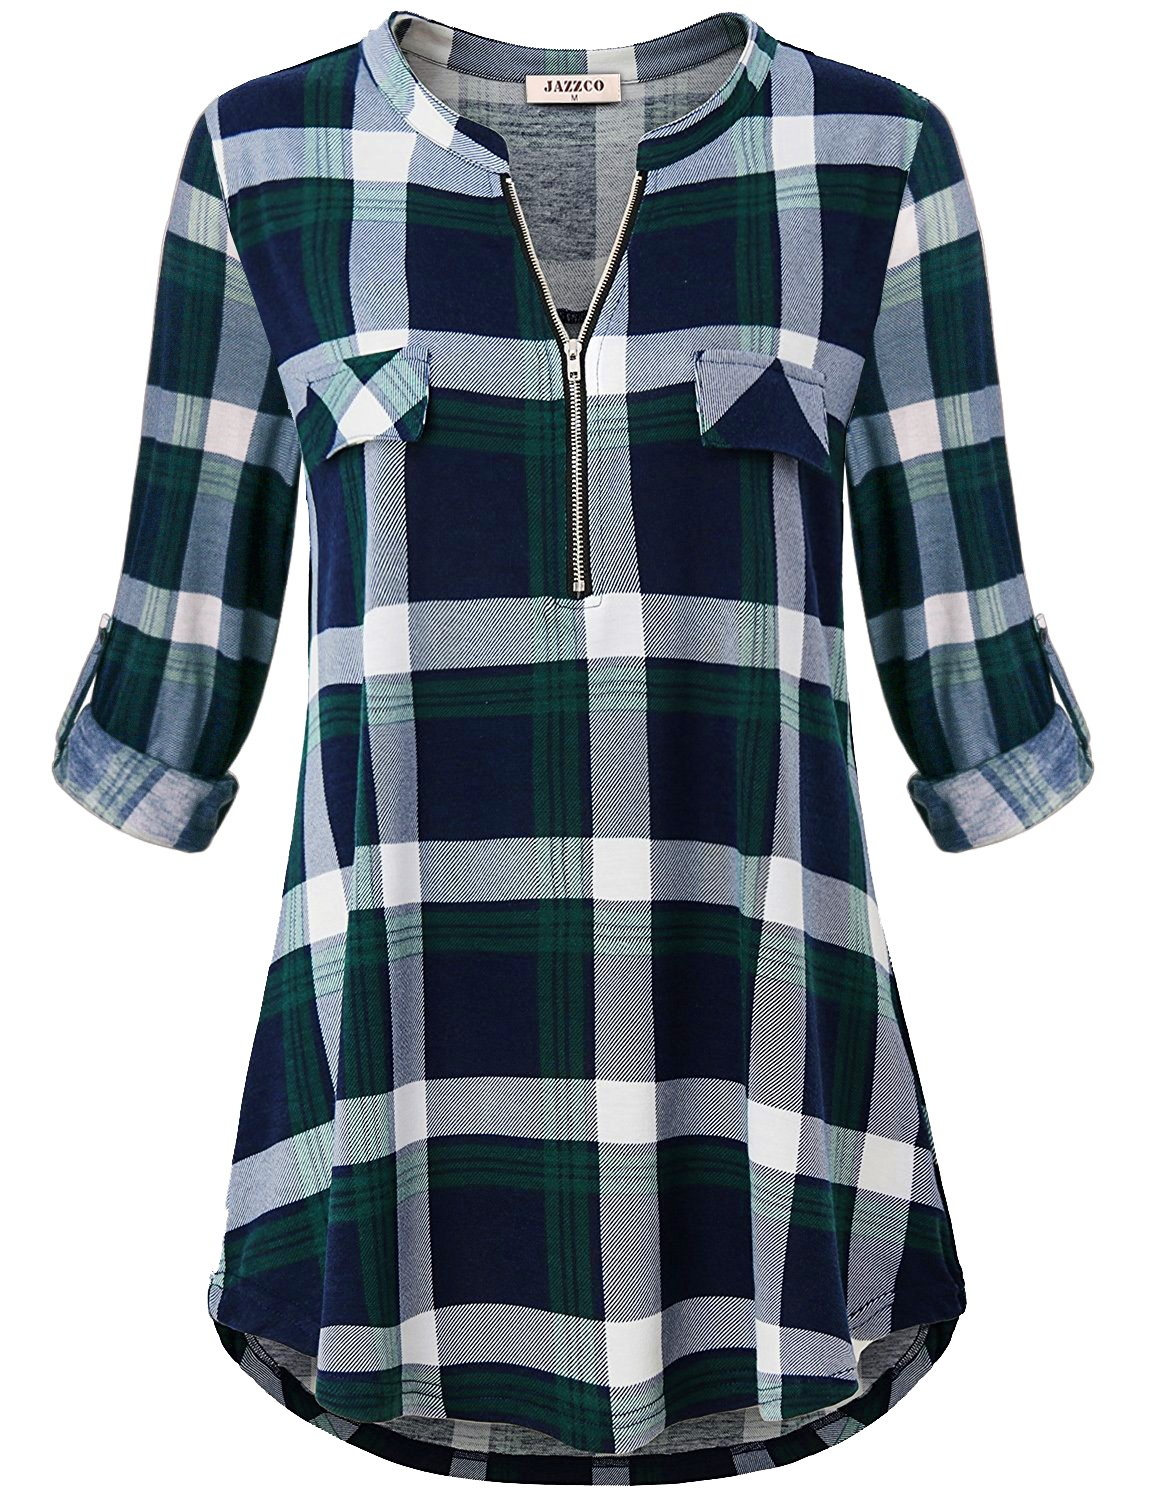 Jazzco Vintage Blouses,Women's Shirts Notched Collar Zip V Neck Rolled up Sleeve Tunic Tops Versatile Retro Style Pleated Back Curved Hem Hipster Baggy Plaid T Shirt(Plaid Green,Large)